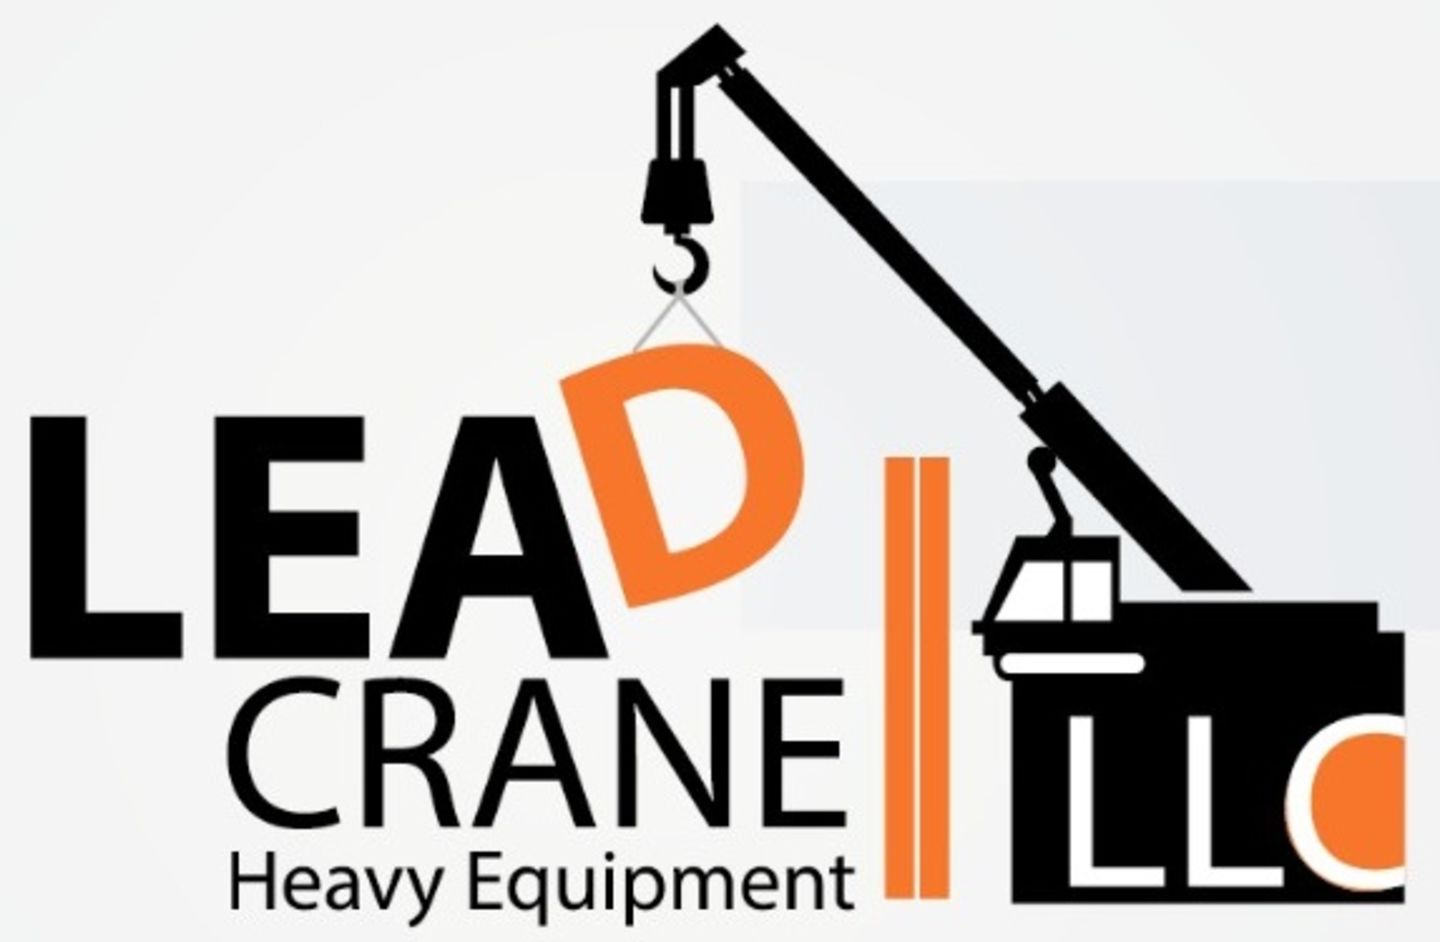 HiDubai-business-lead-crane-heavy-equipment-spare-parts-trading-construction-heavy-industries-heavy-equipment-machinery-port-saeed-dubai